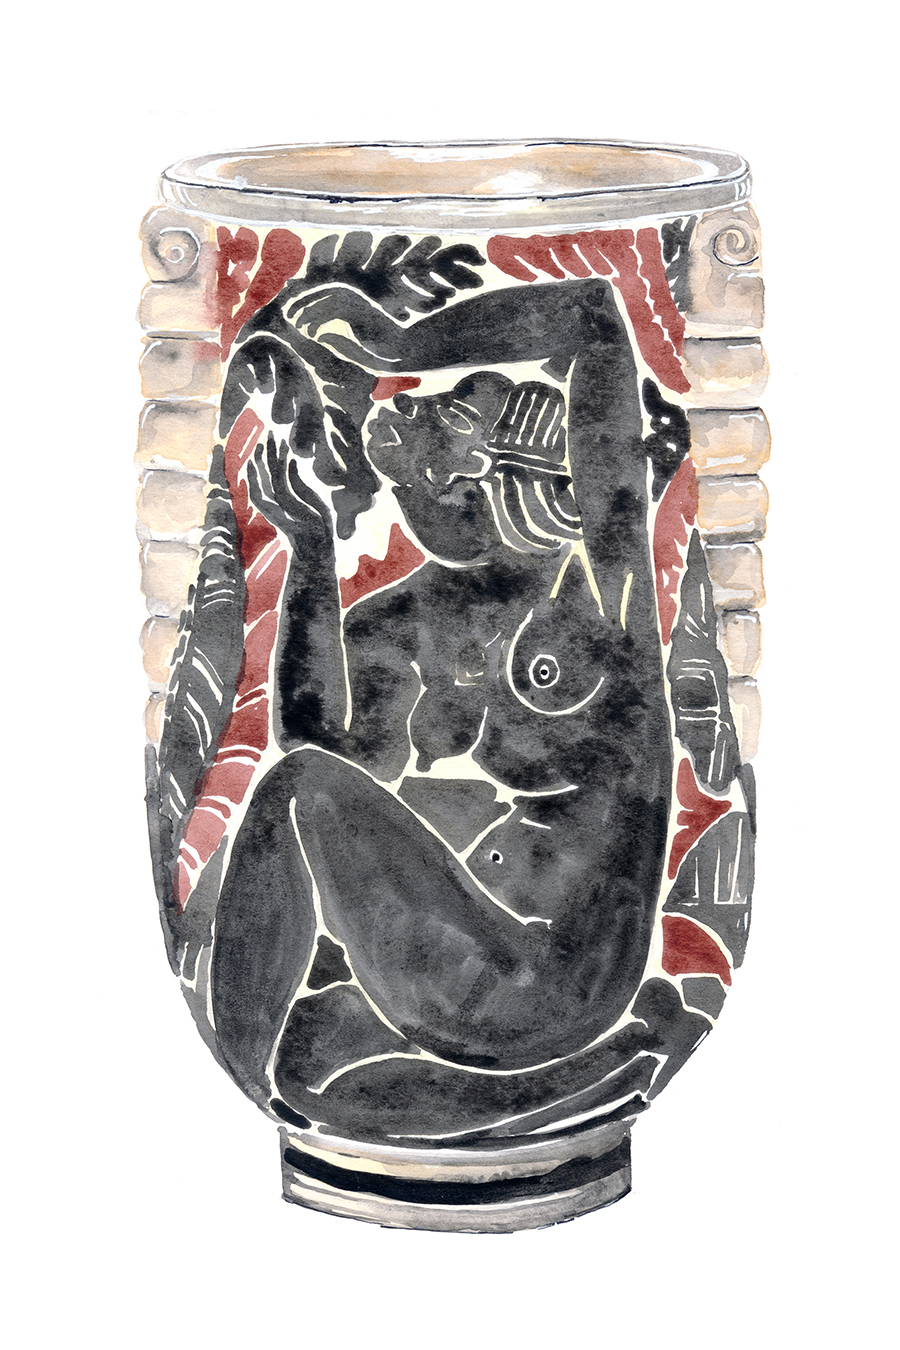 Glazed Stoneware by René Buthaud, 1931 - Watercolor and pencil on paper, 2018.René Buthaud was seen as the most accomplished and important French ceramist of the Art Deco period. He designed simple stoneware forms made for him by local potters and used crackle glazes with which to decorate them. He was also influenced by African tribal art, evident in those pieces where he used lustres or what he called 'peau de serpent' (snakeskin). Many of his best-known pieces are painted with female nudes. Work by Buthaud can be found in the collections of the Musée des Arts Décoratifs in Paris, the Metropolitan Museum of Art, among many others.